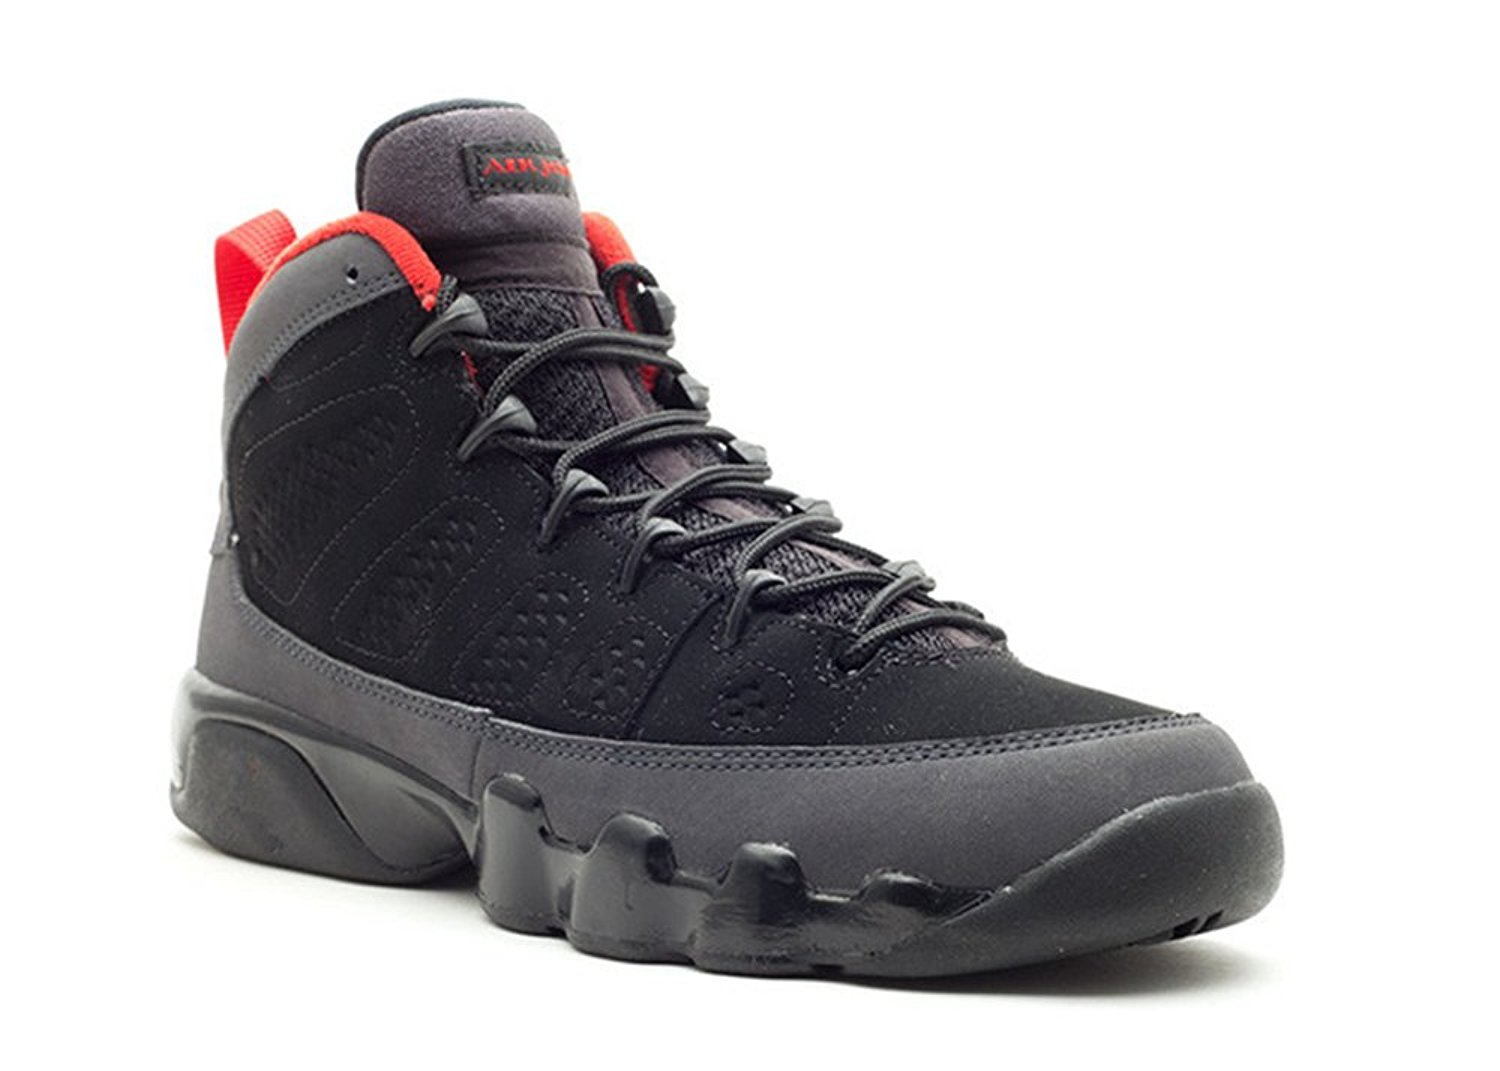 best website 858c4 468a3 Get Quotations · Basketball Men s Shoes Air Jordan 9 Retro gs Black varsity  red drk charcoal 011277 2 Performance